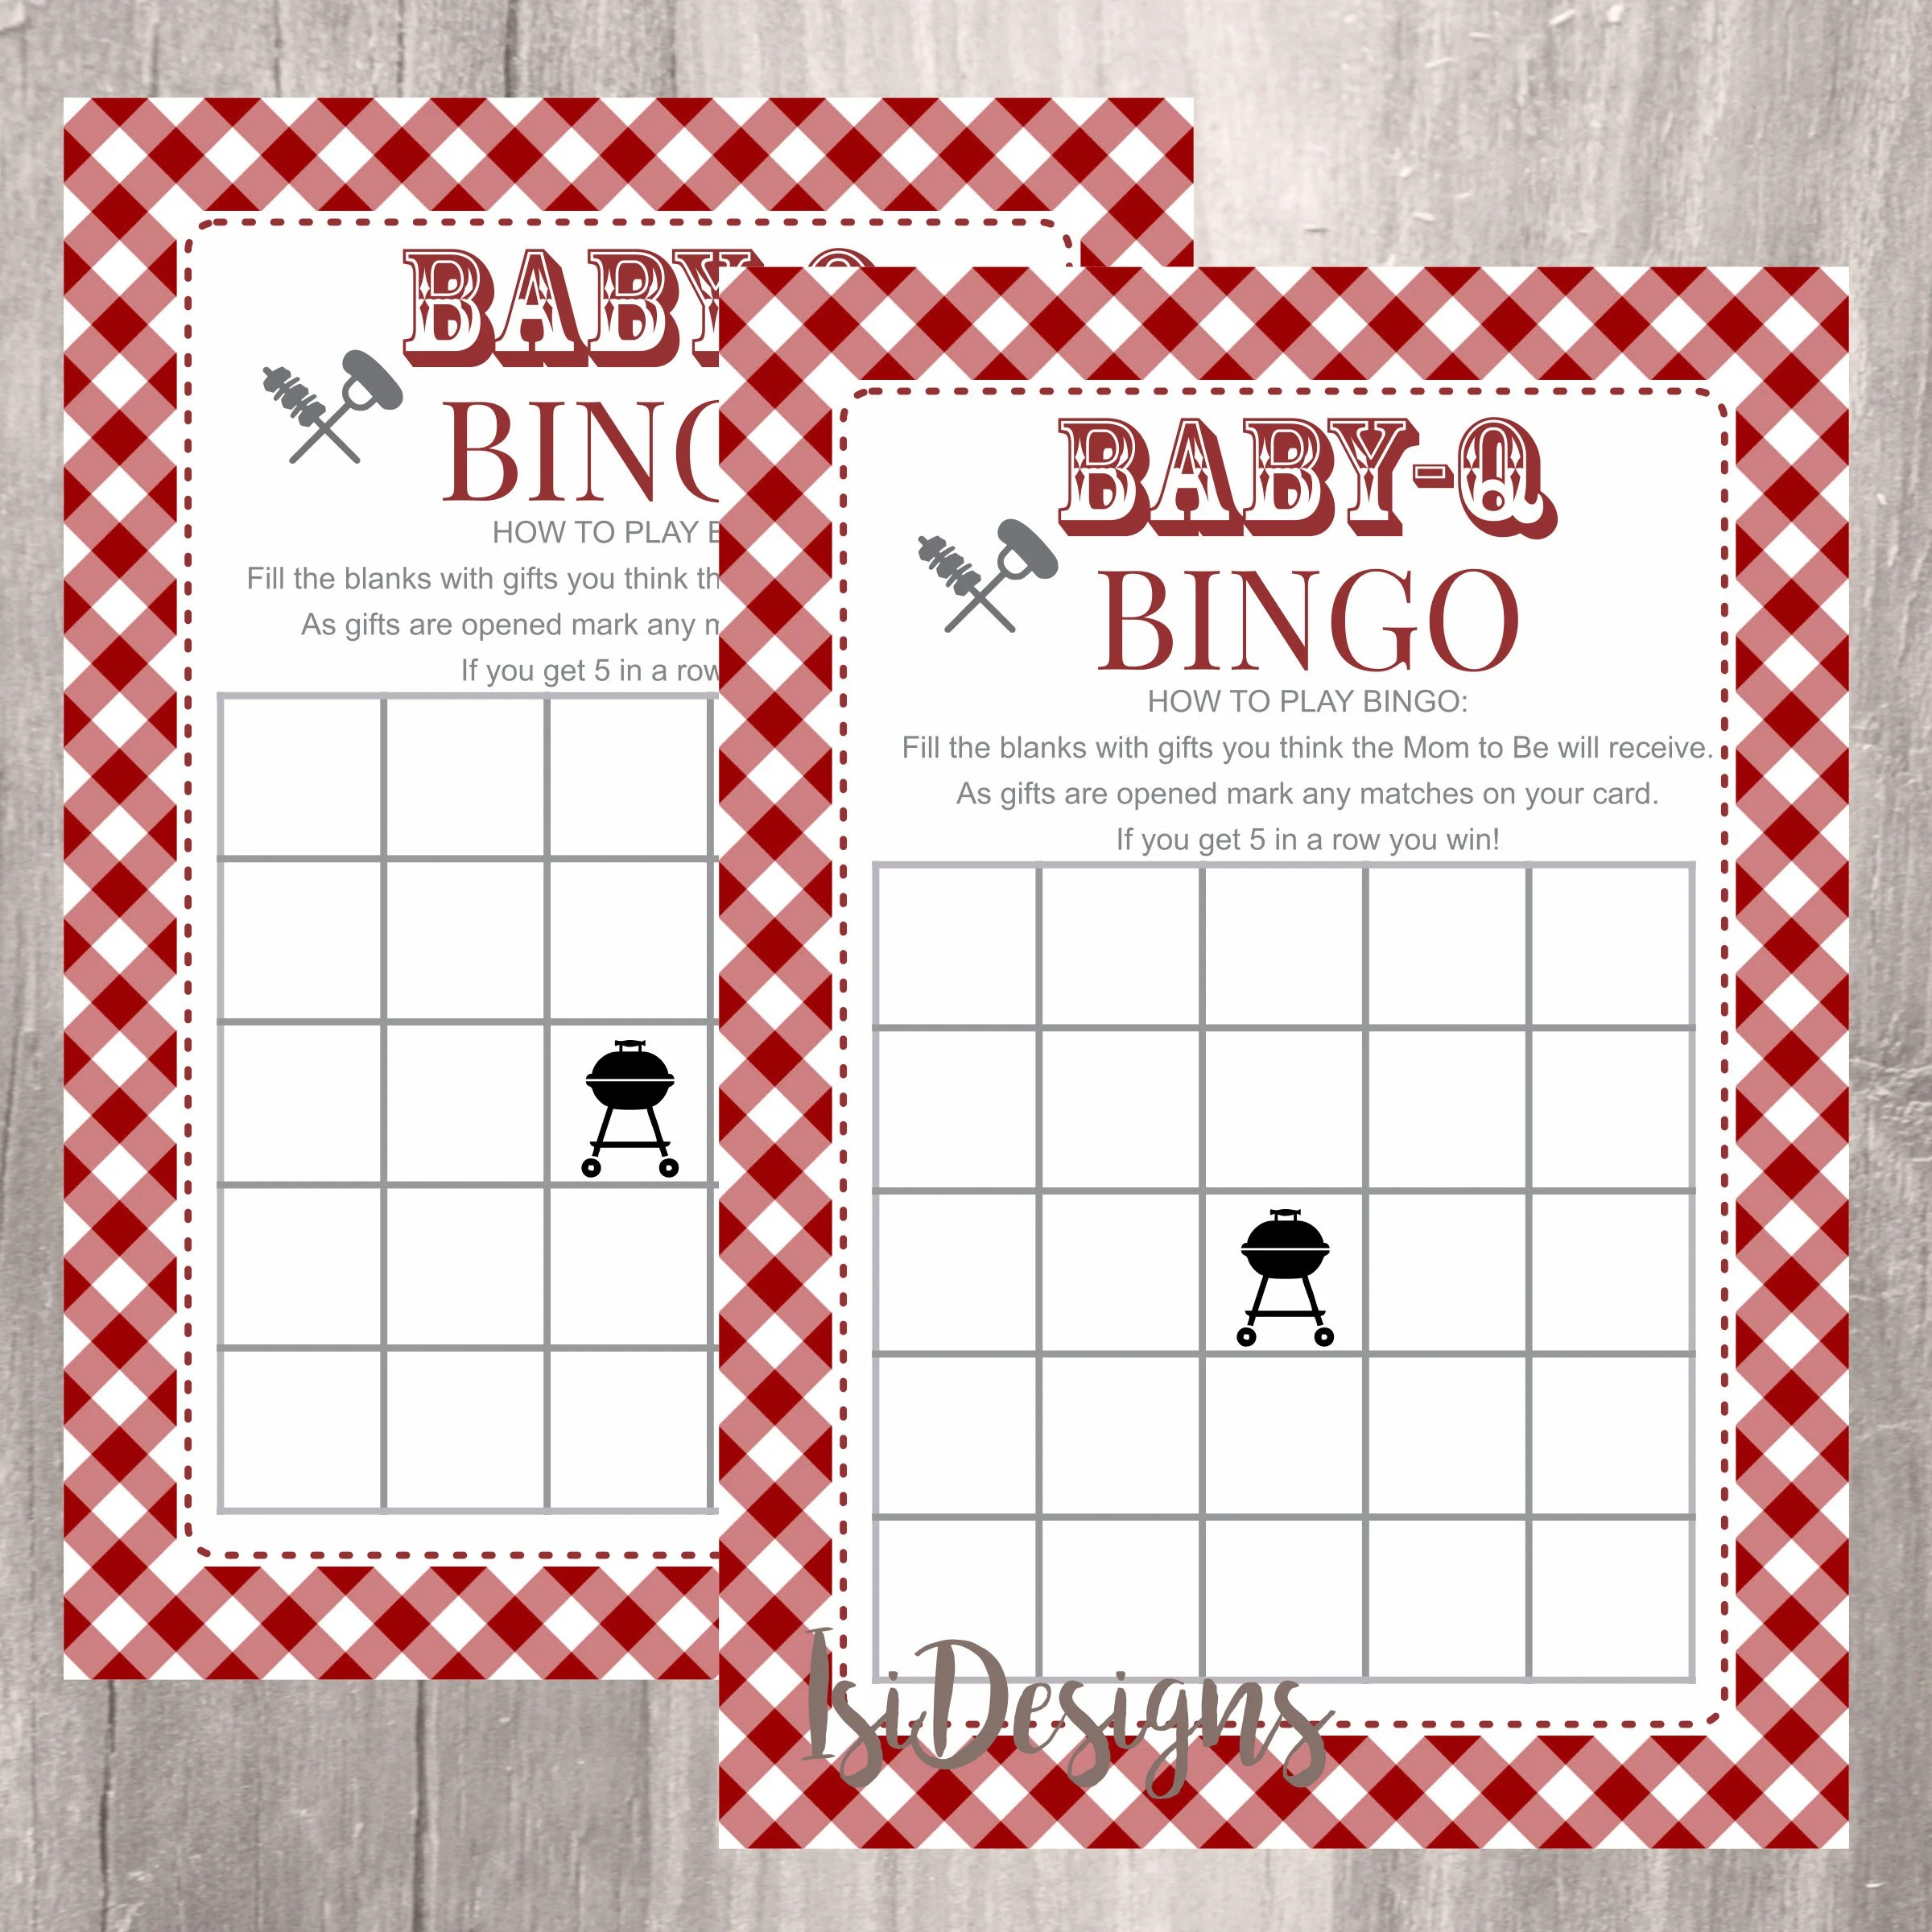 Baby Shower Bingo Printable Babyq Shower Bingo Cards